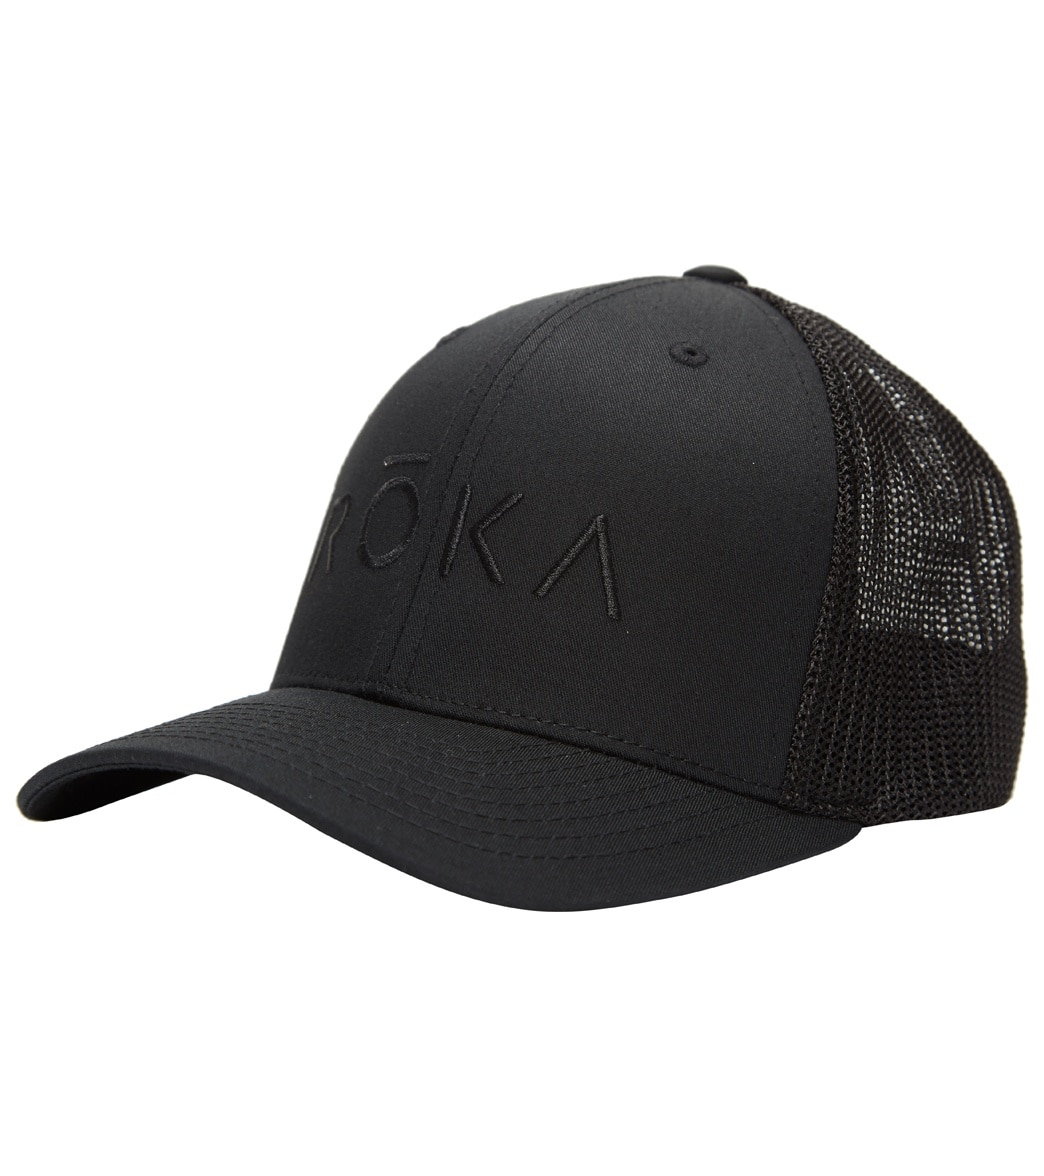 39d84e68 ROKA Sports Pro Team Flexfit Hat at SwimOutlet.com